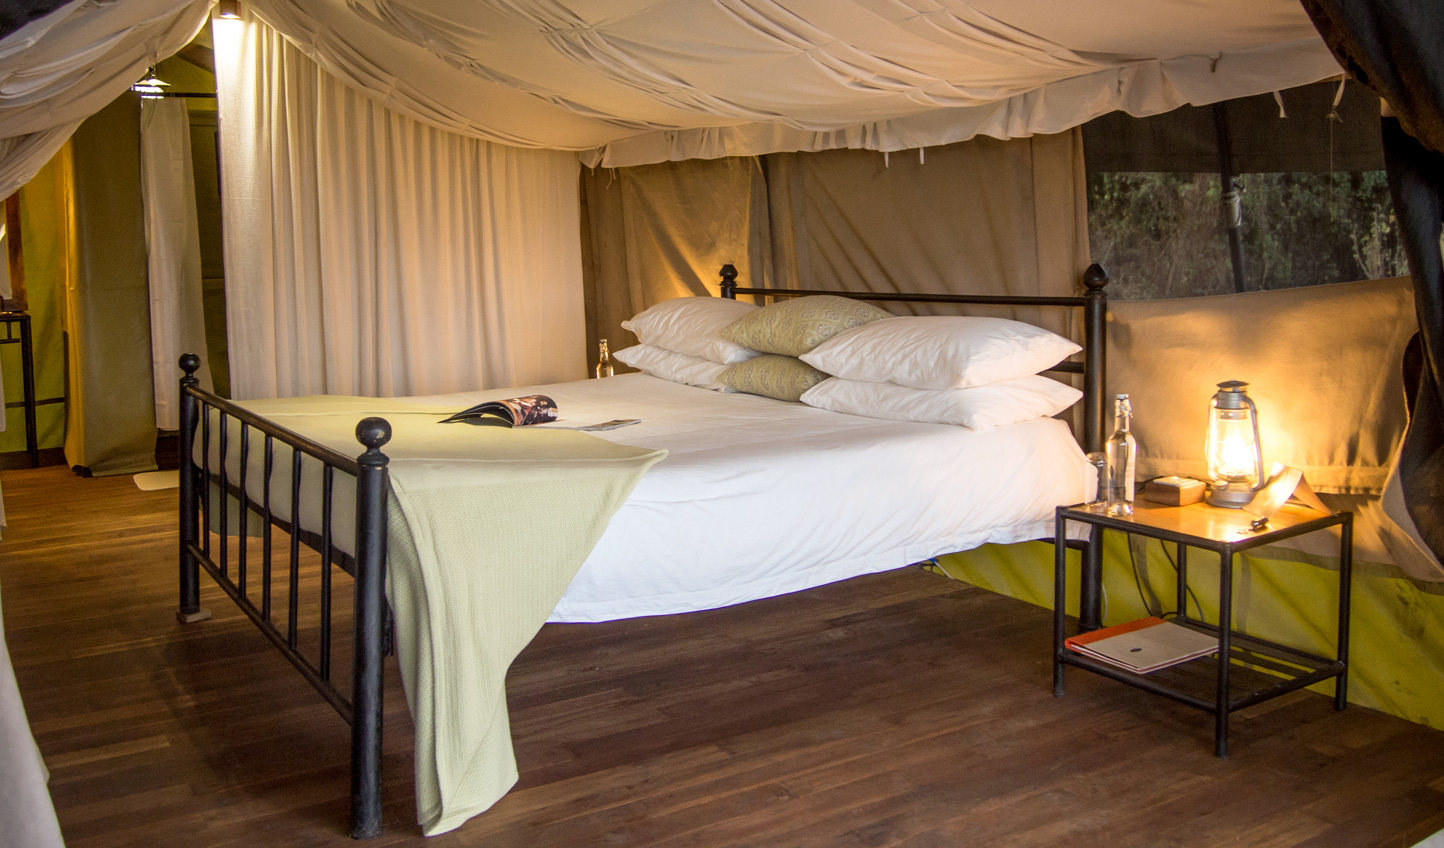 Step into your tent and discover a whole new take on camping